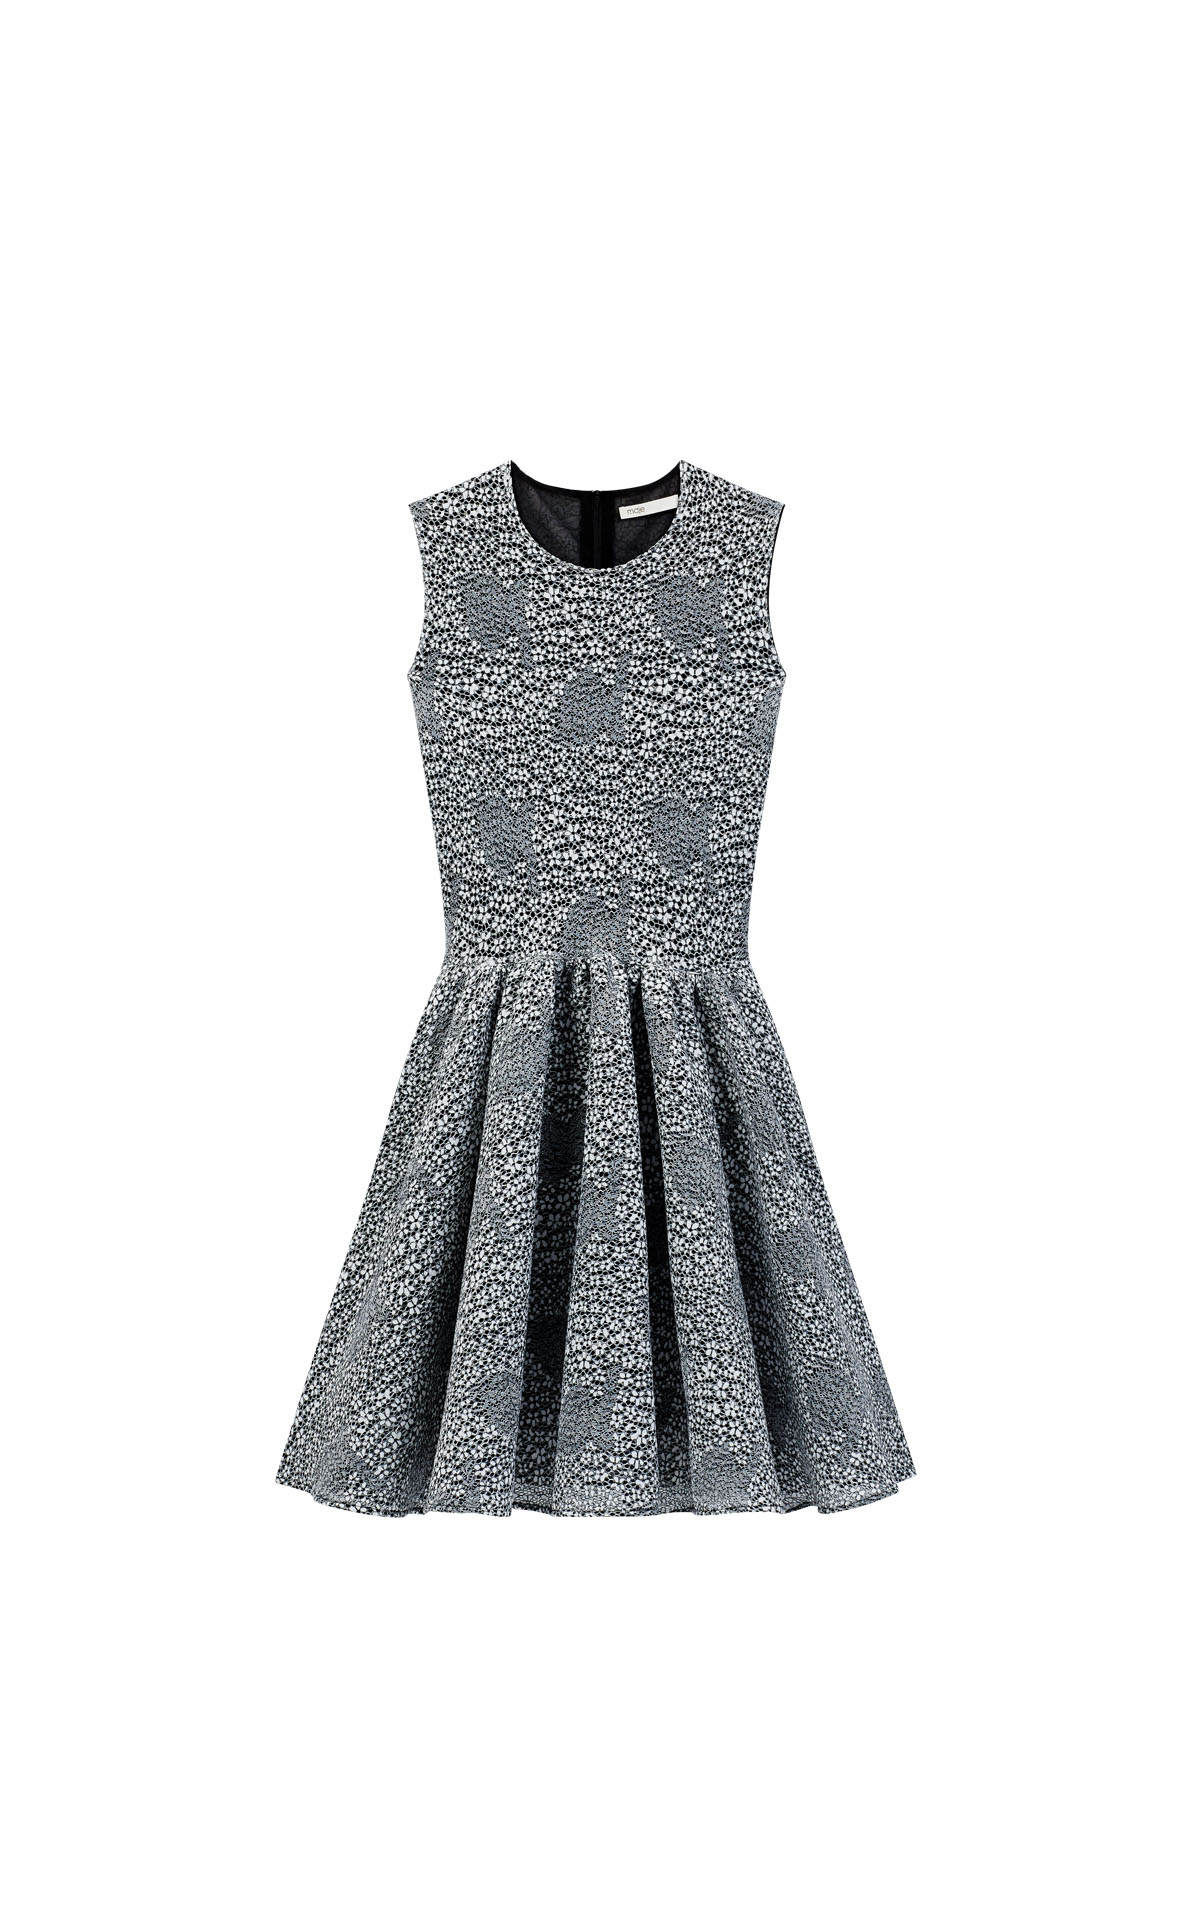 Maje skater two-tone knit dress at The Bicester Village Shopping Collection